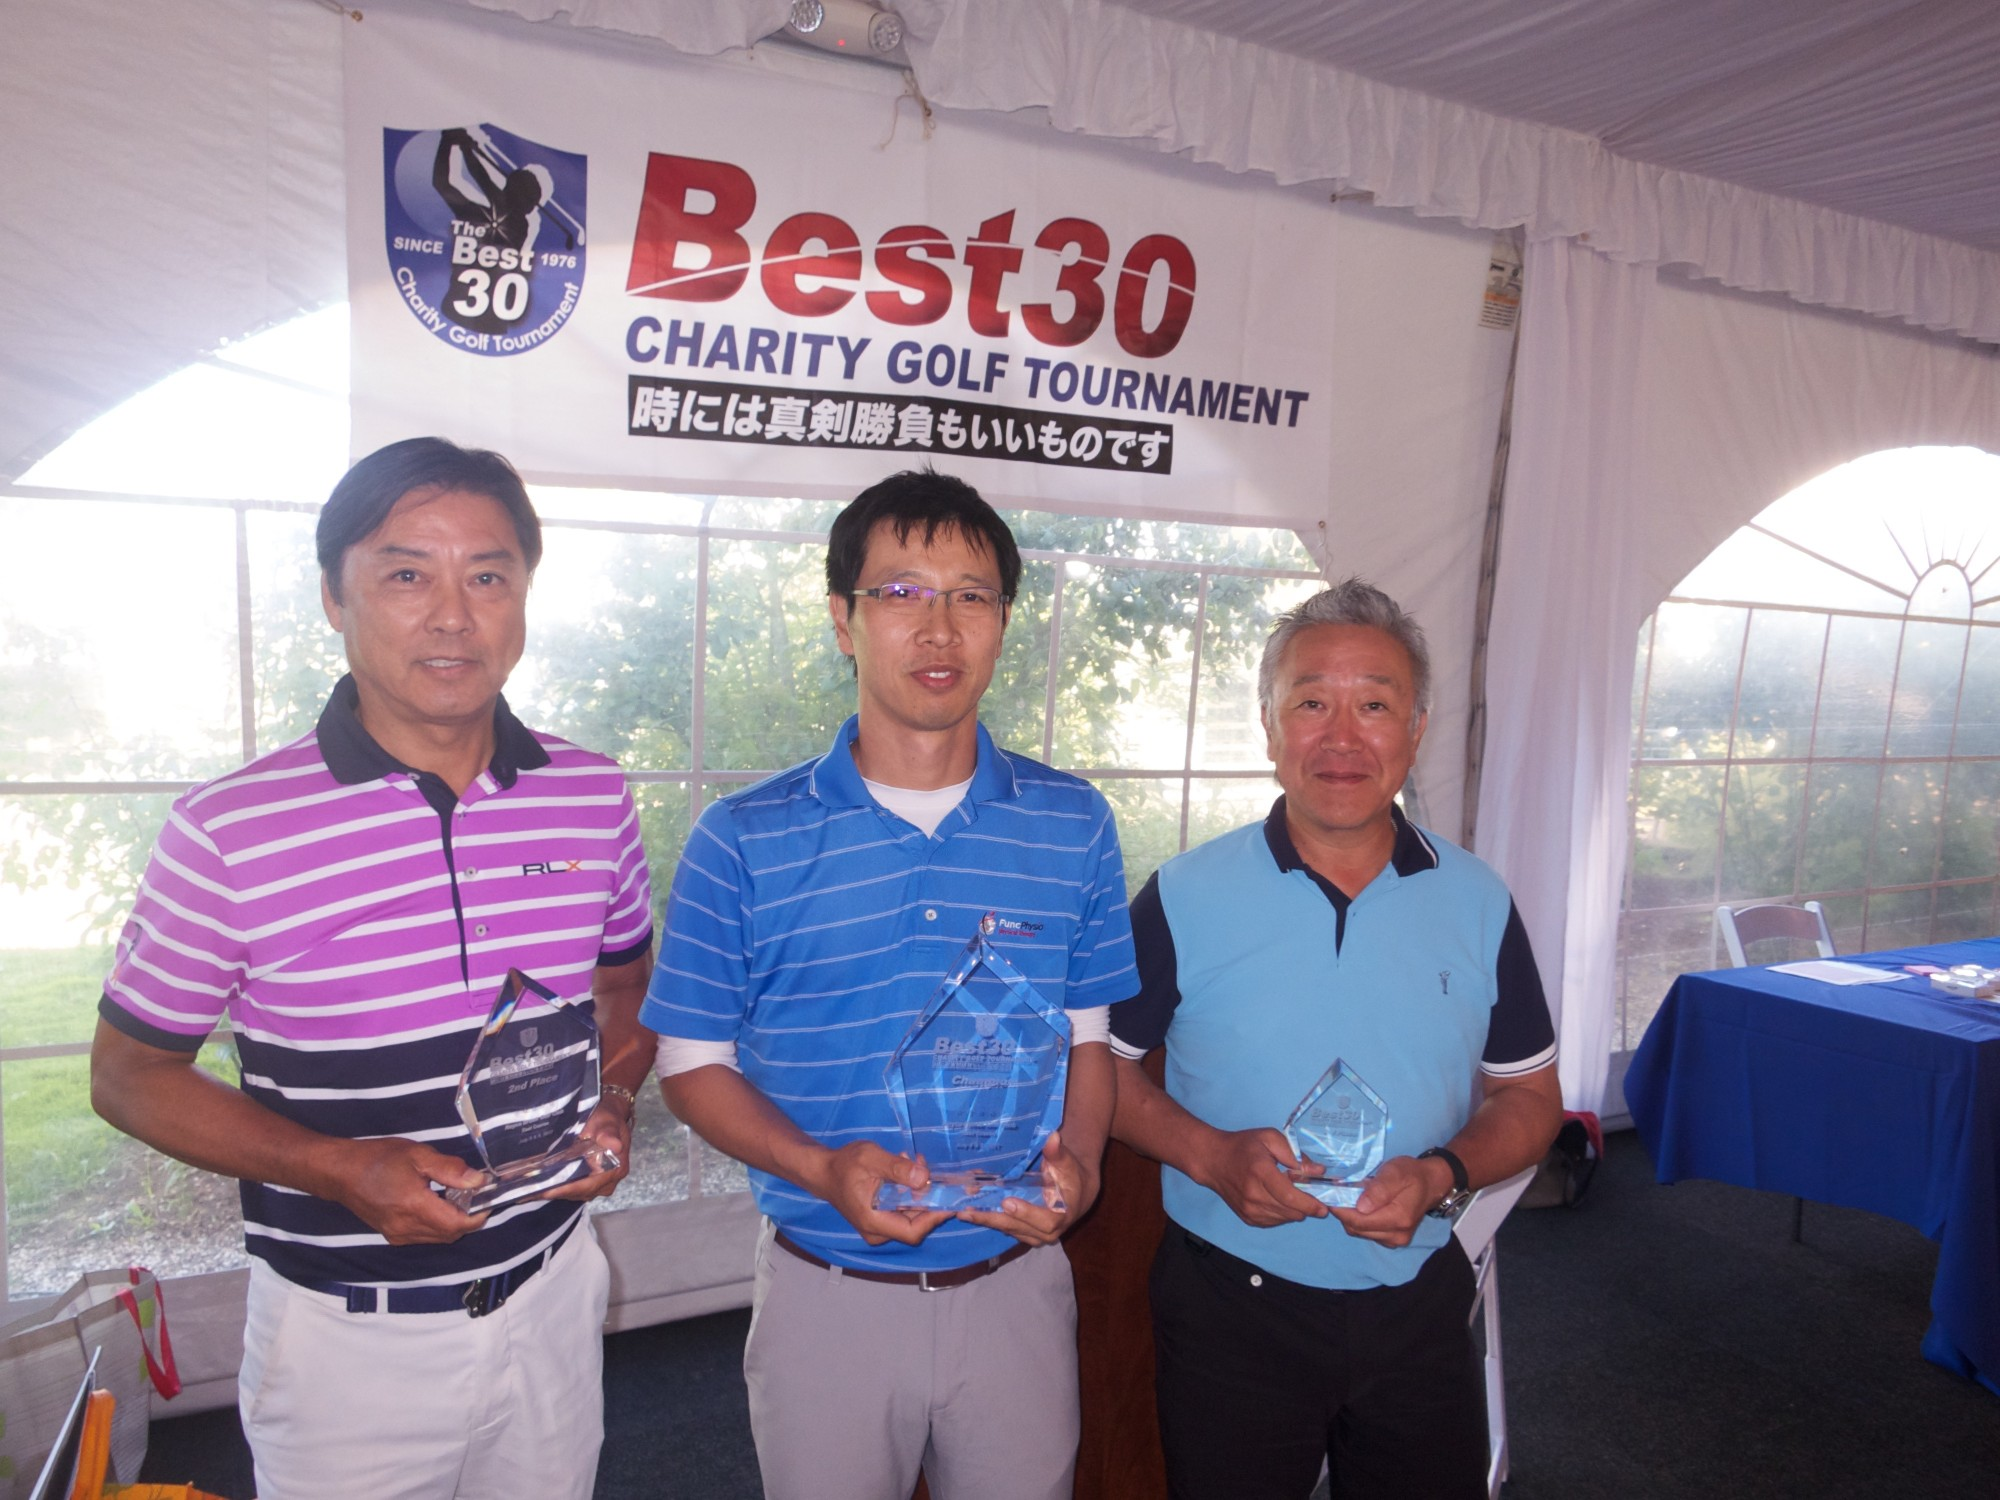 2017 Best 30, Left (Jun Nakamura, 2nd),Center (Yohei Takada, Winner), Right (Ren Yamagata, 3rd)